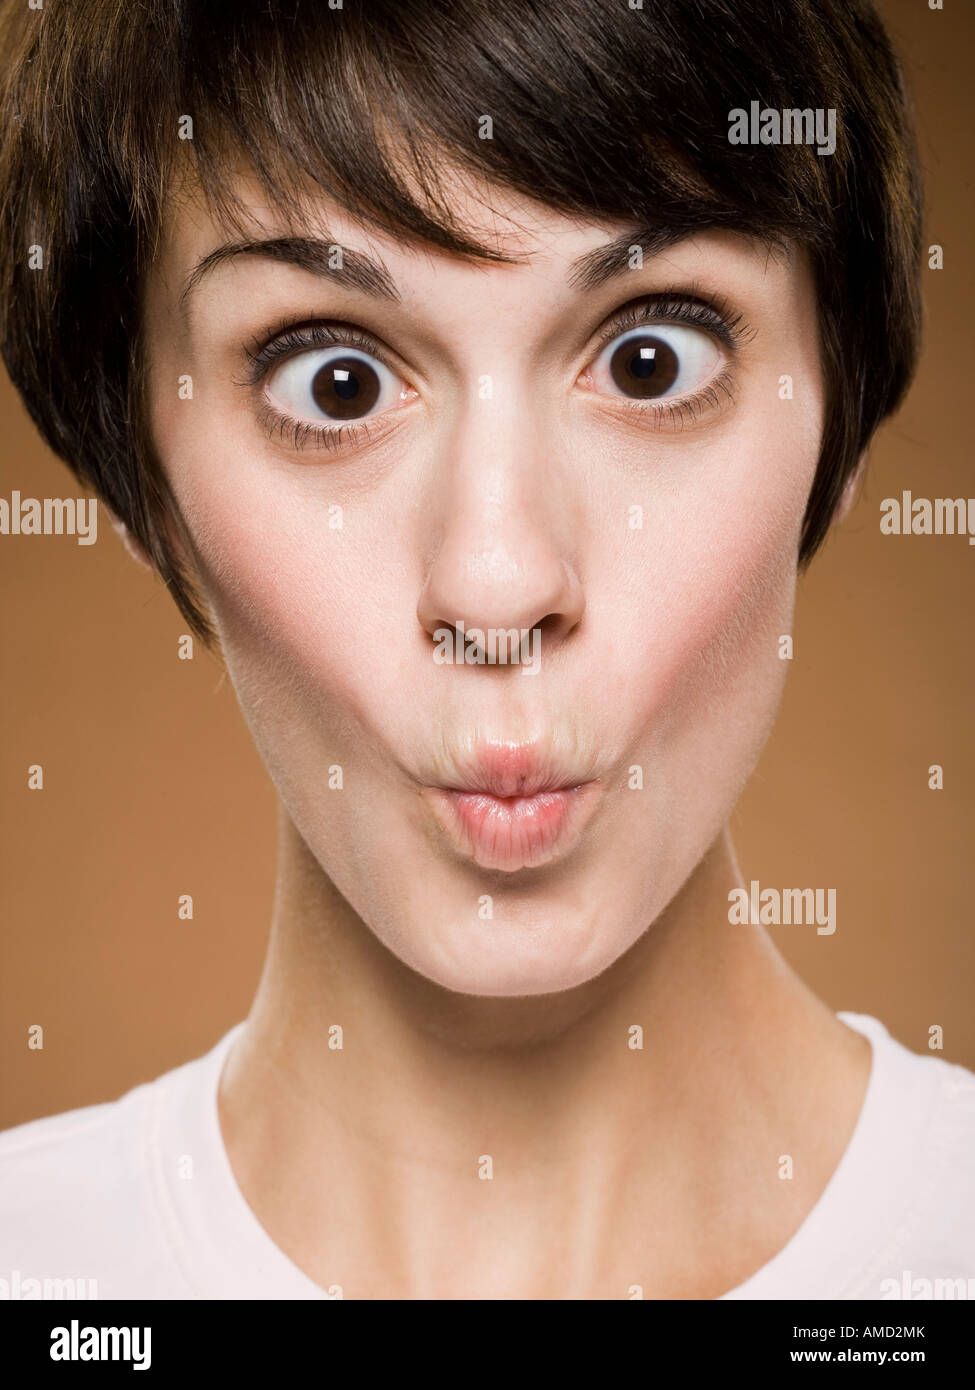 Grimace face clip art stock photo woman pulls a face in upset - Woman Making Funny Face With Eyes Crossed And Puckered Lips Stock Image